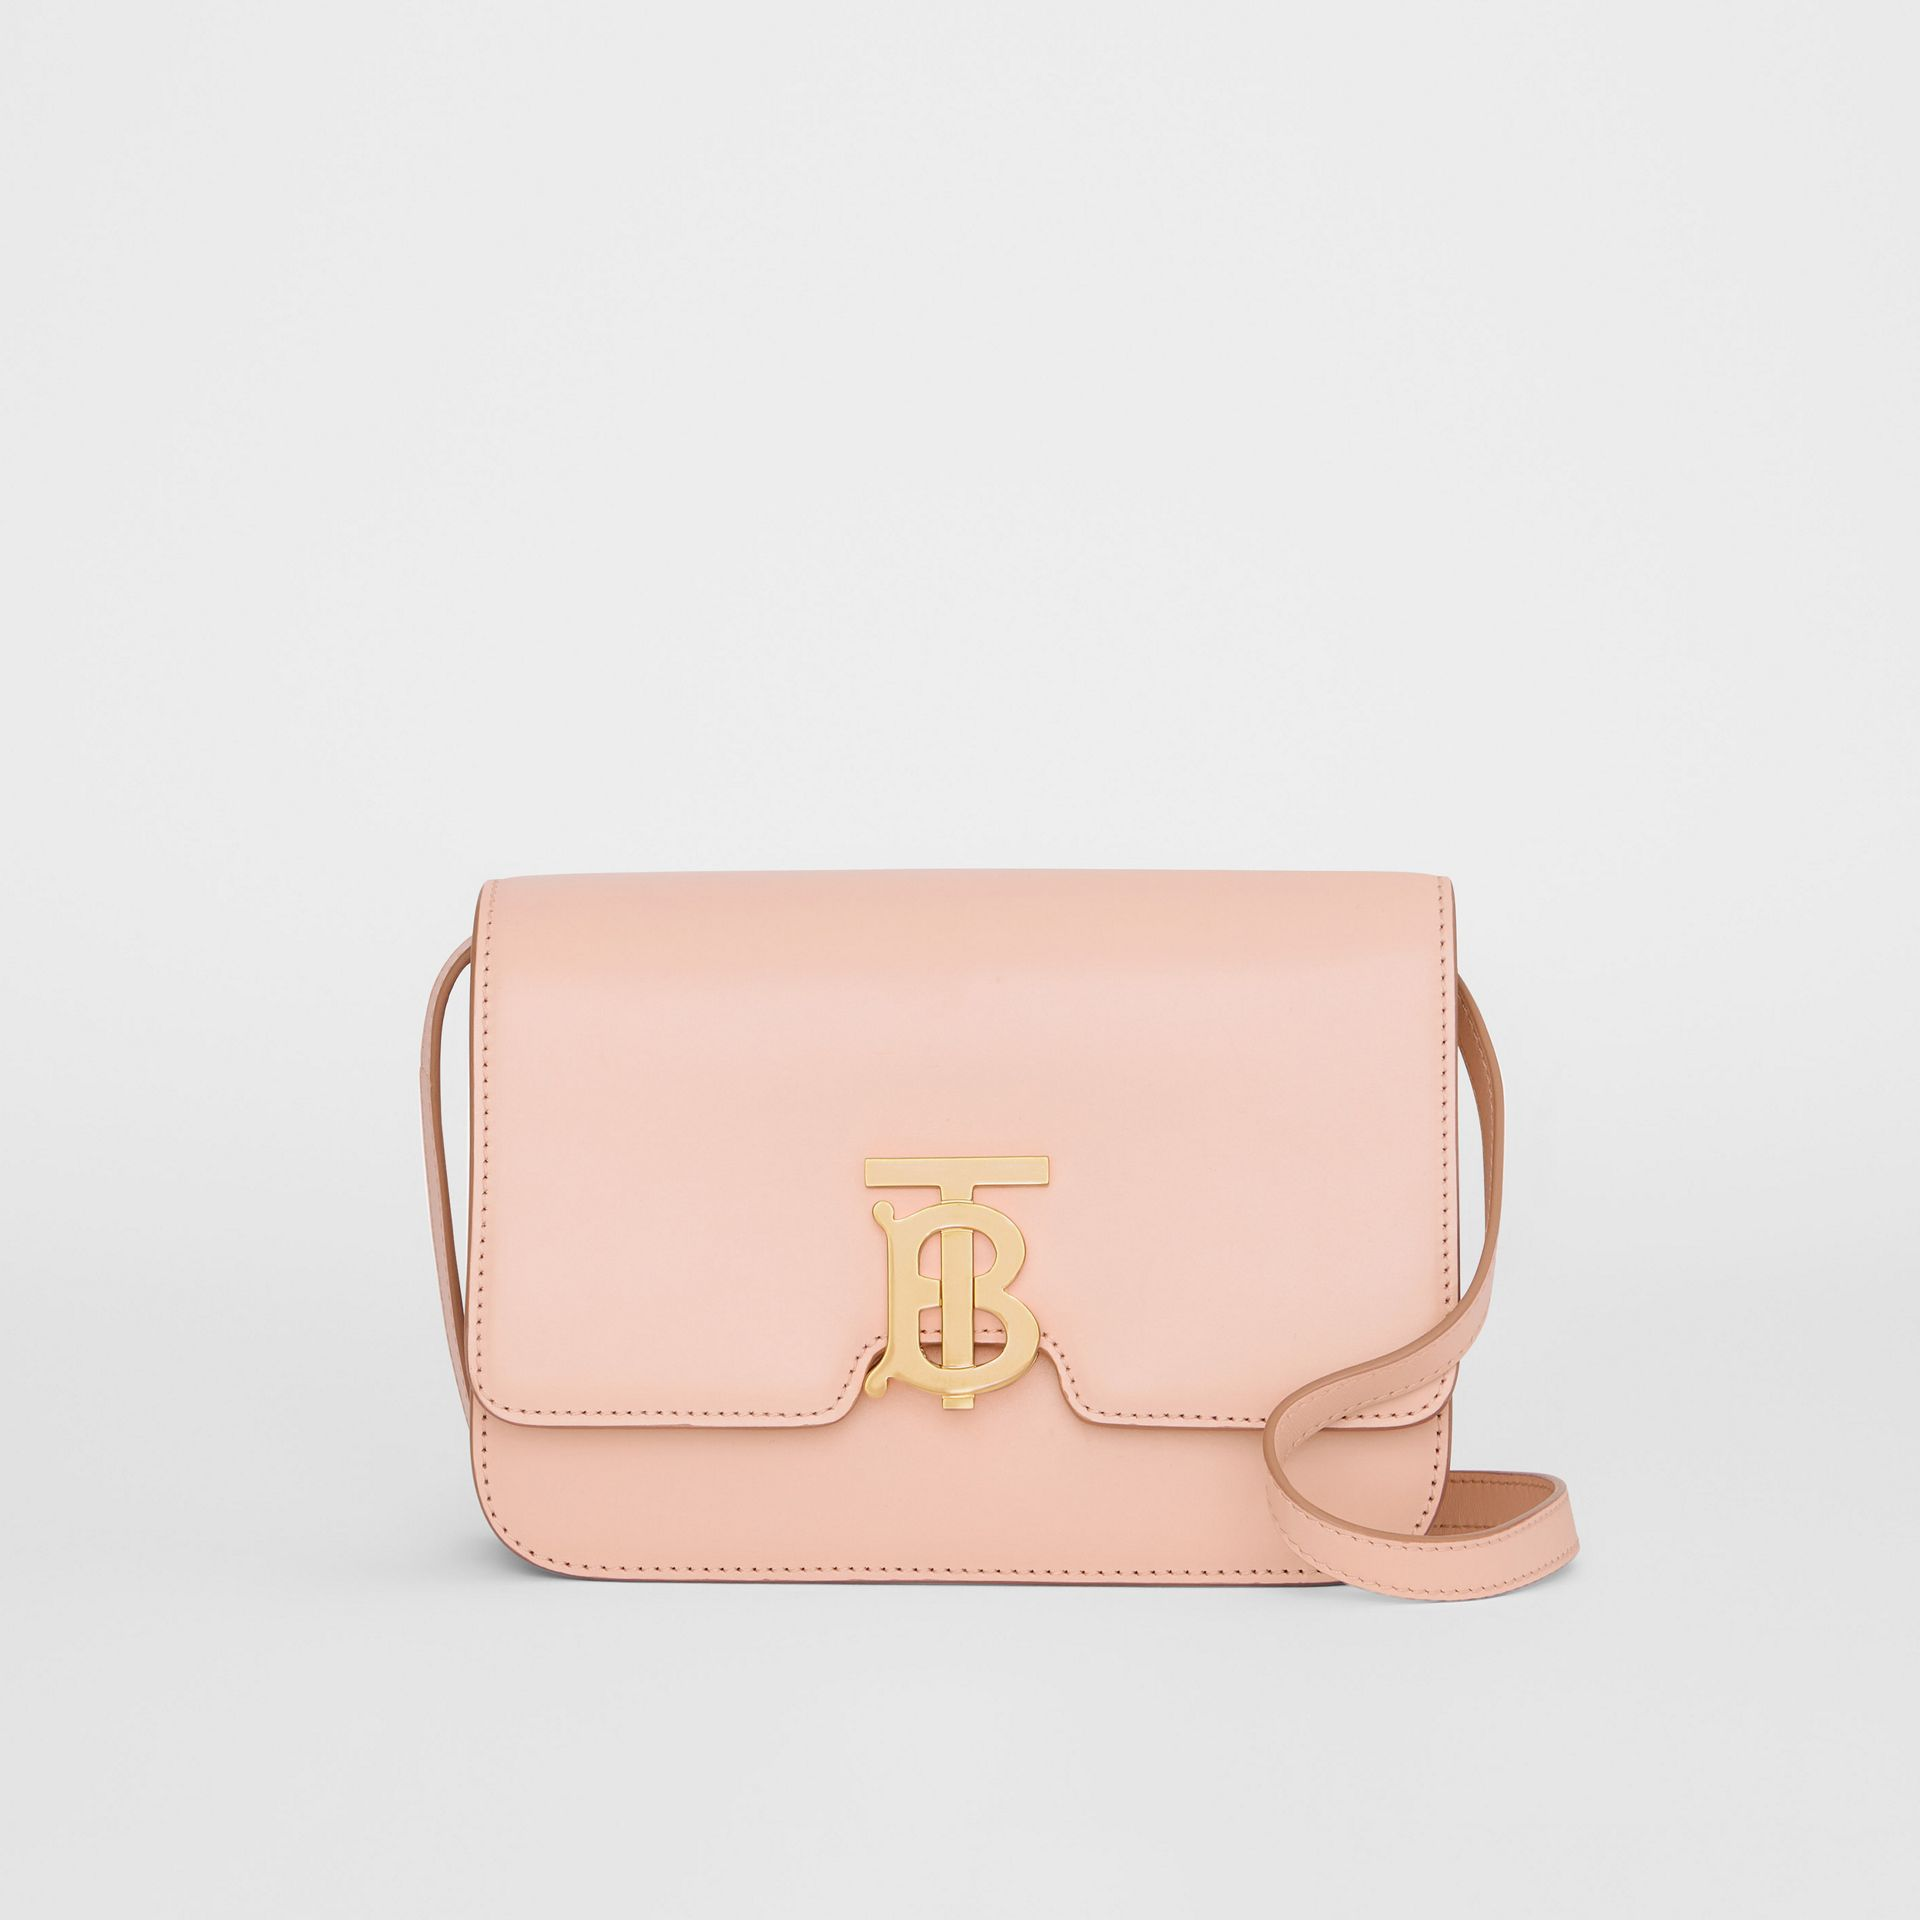 Small Leather TB Bag in Rose Beige - Women | Burberry - gallery image 0